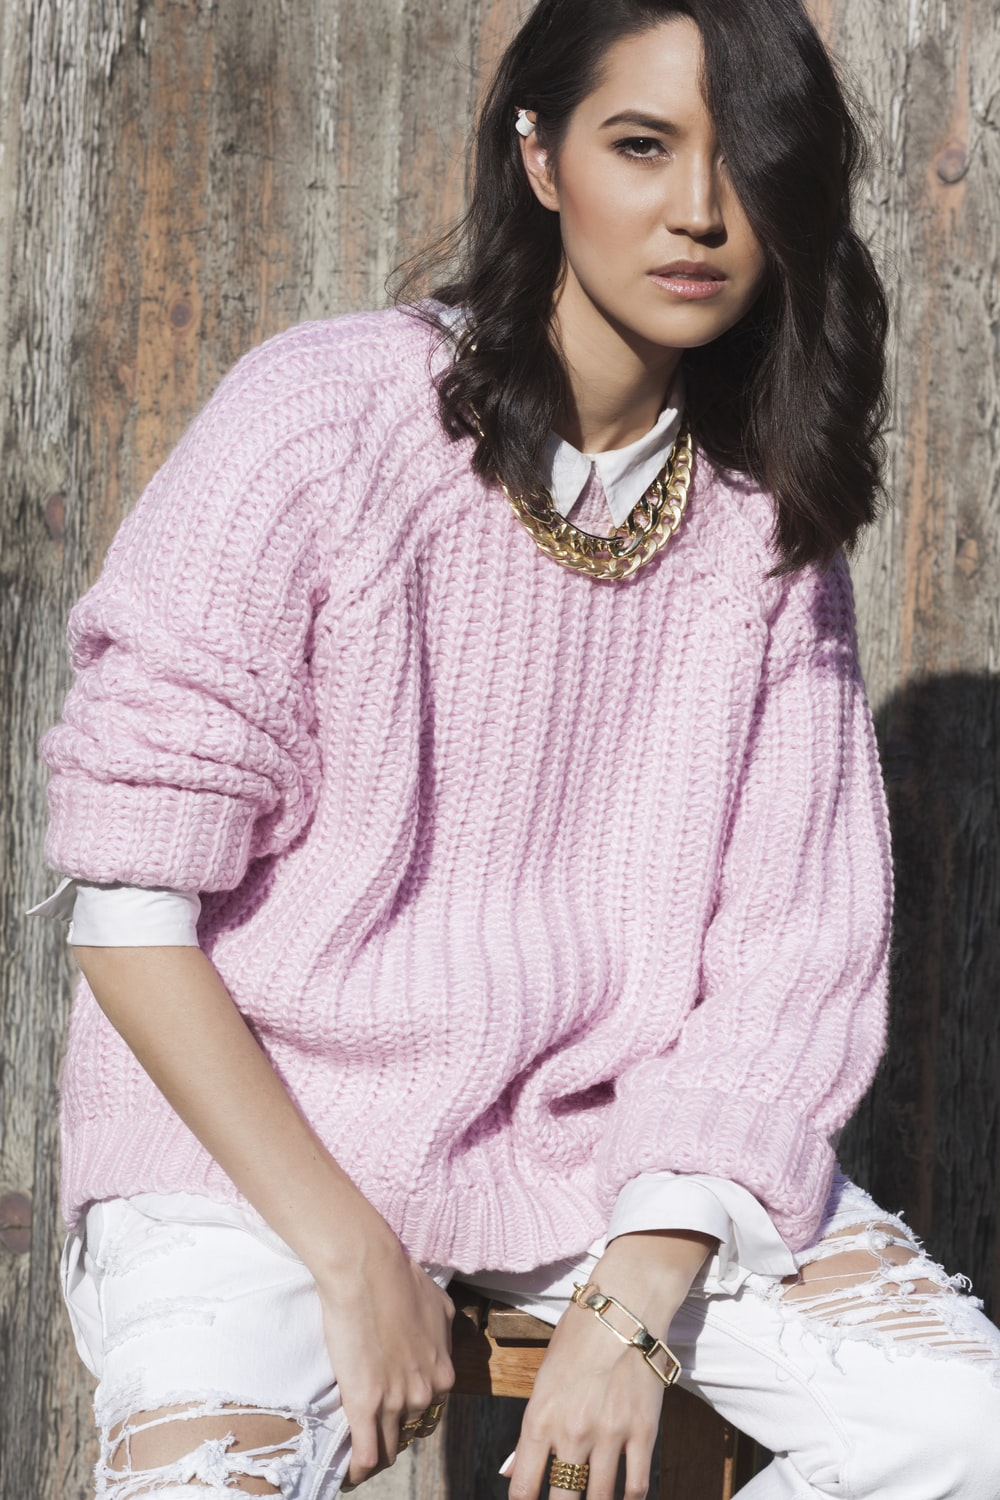 women in pink knitted sweater sitting by woode wall